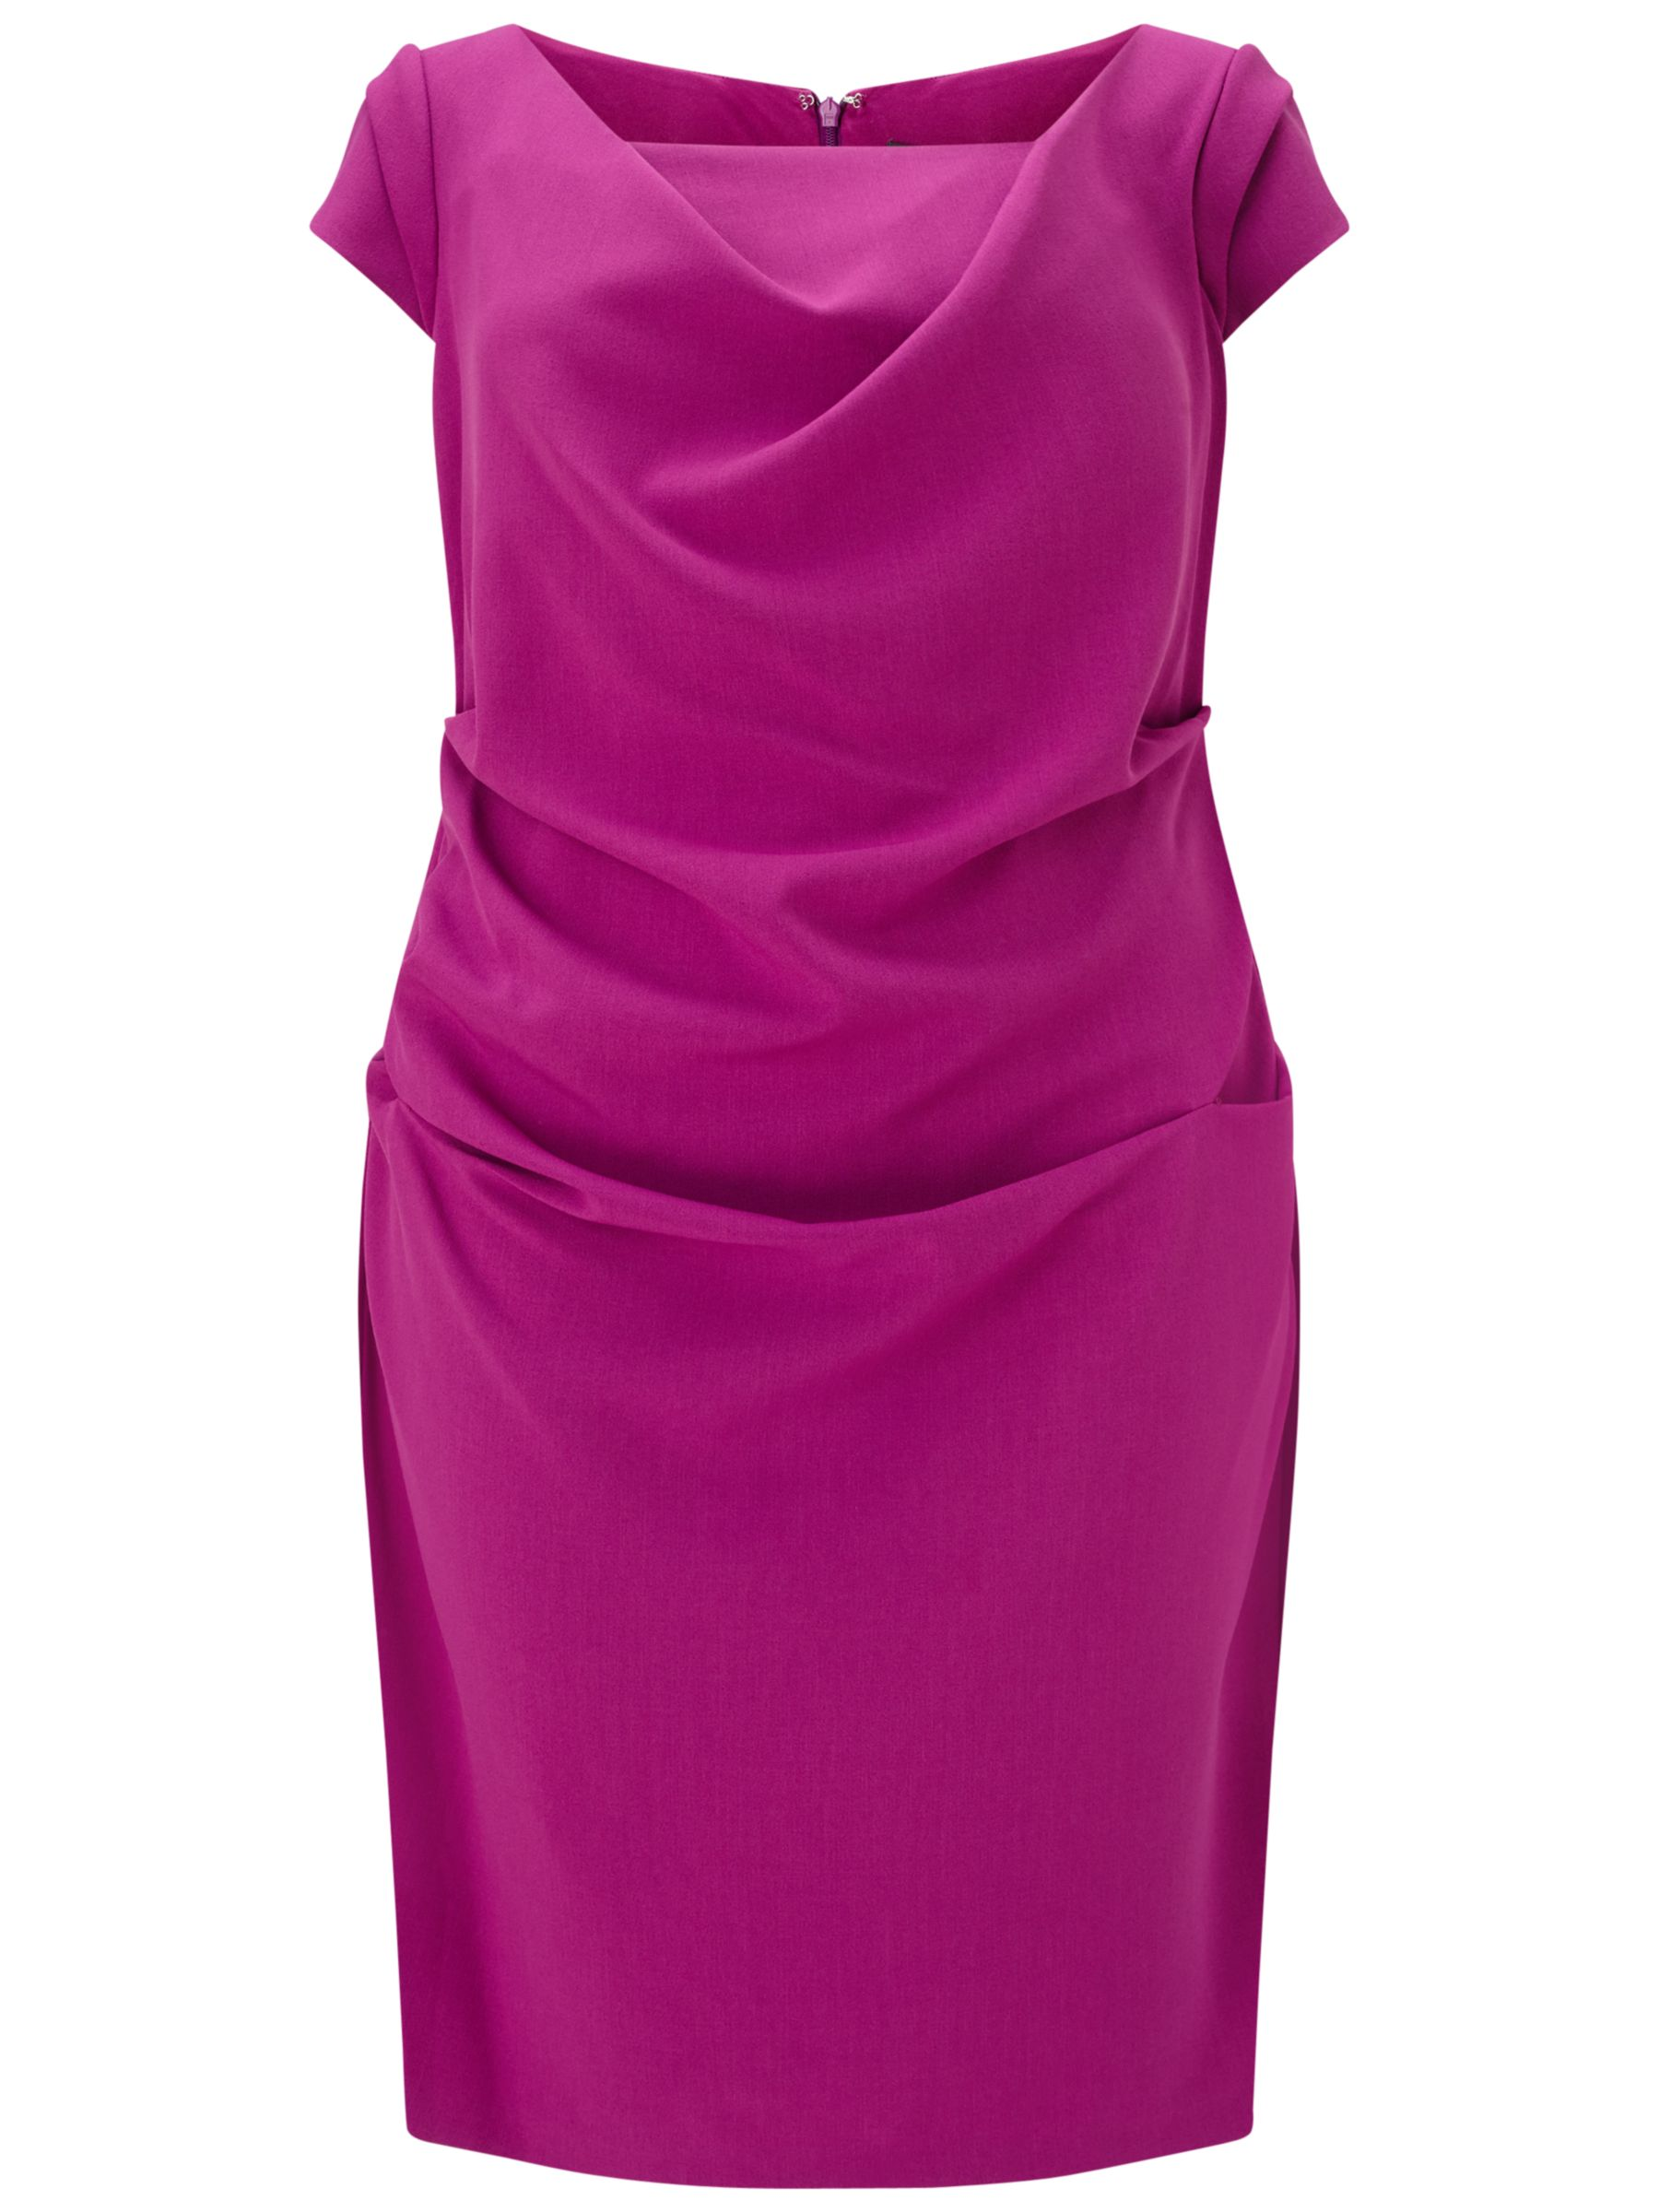 Adrianna Papell Adrianna Papell Plus Size Draped Cowl Neck Sheath Dress, Deep Berry